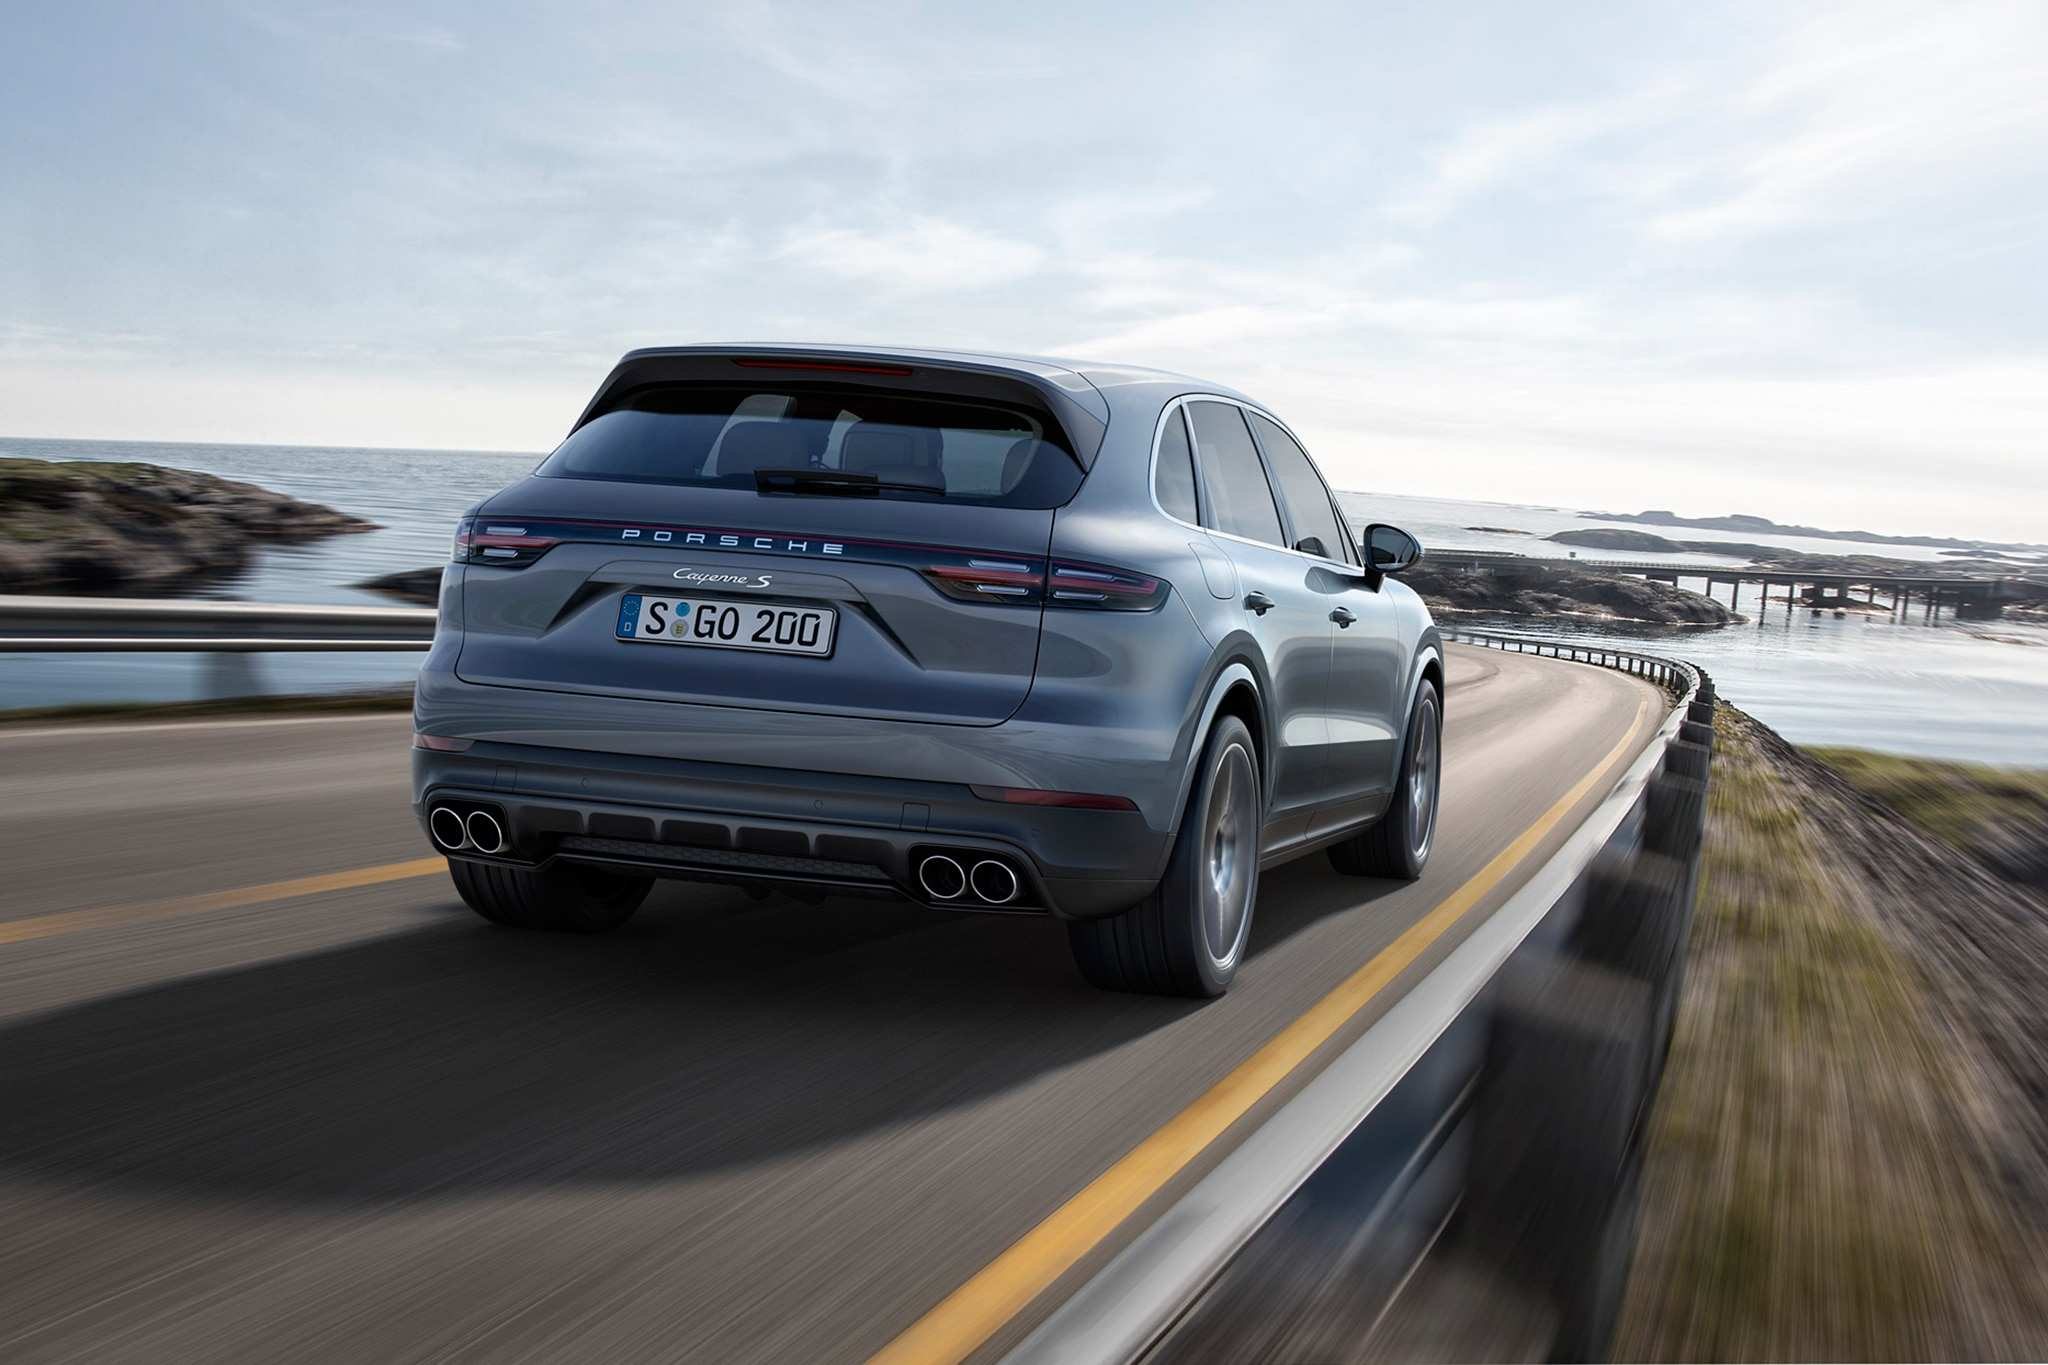 17 New 2020 Porsche Cayenne Turbo S Review